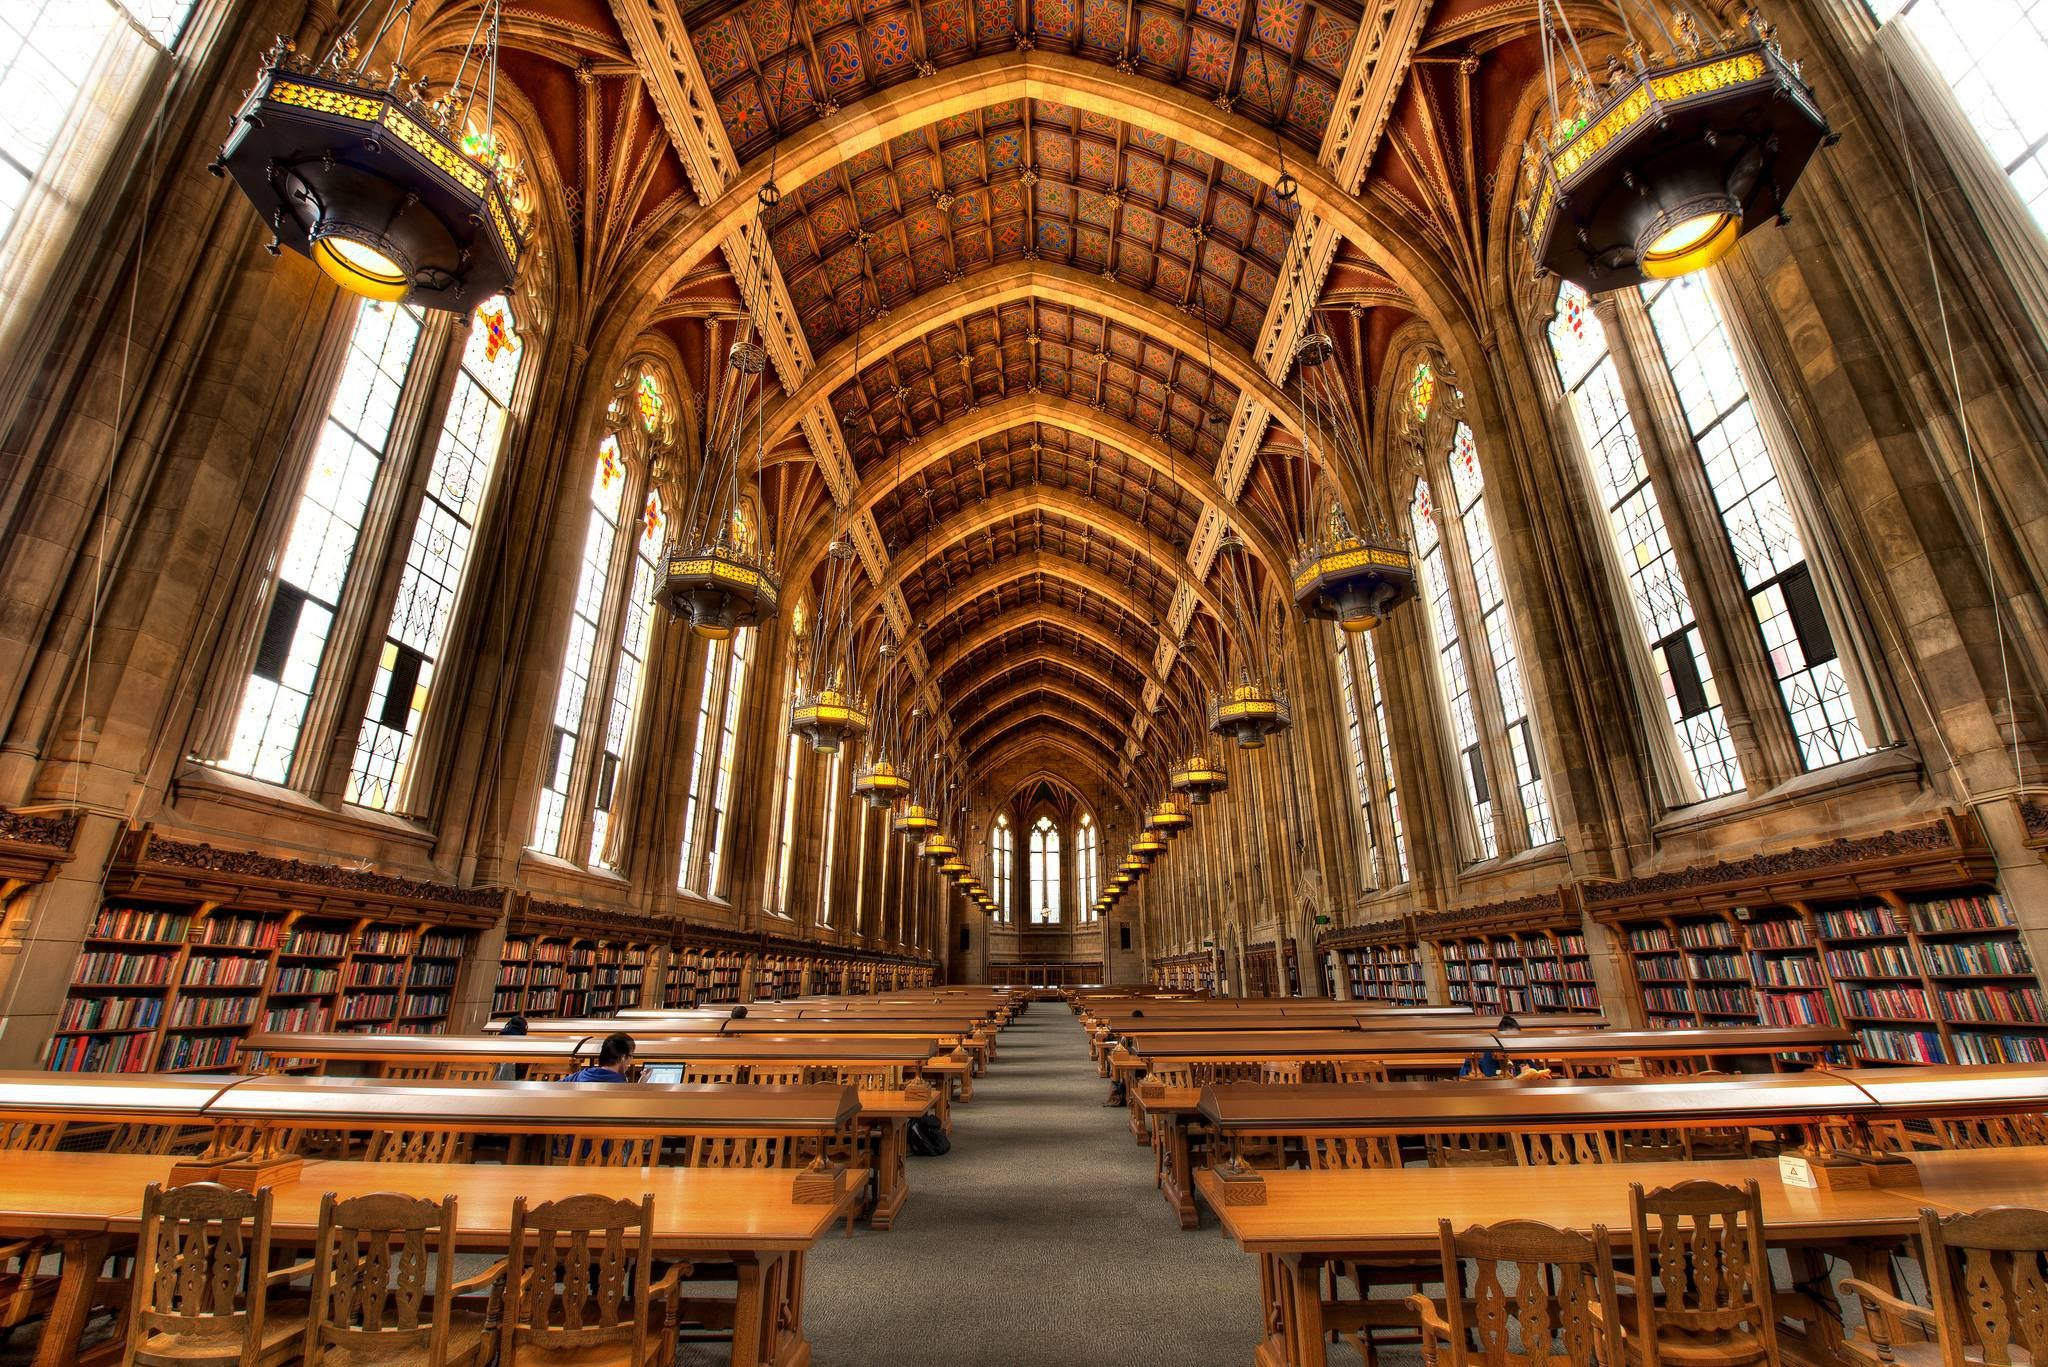 Seattle Staycation Guide #2 - Suzzallo Library at The University of Washington